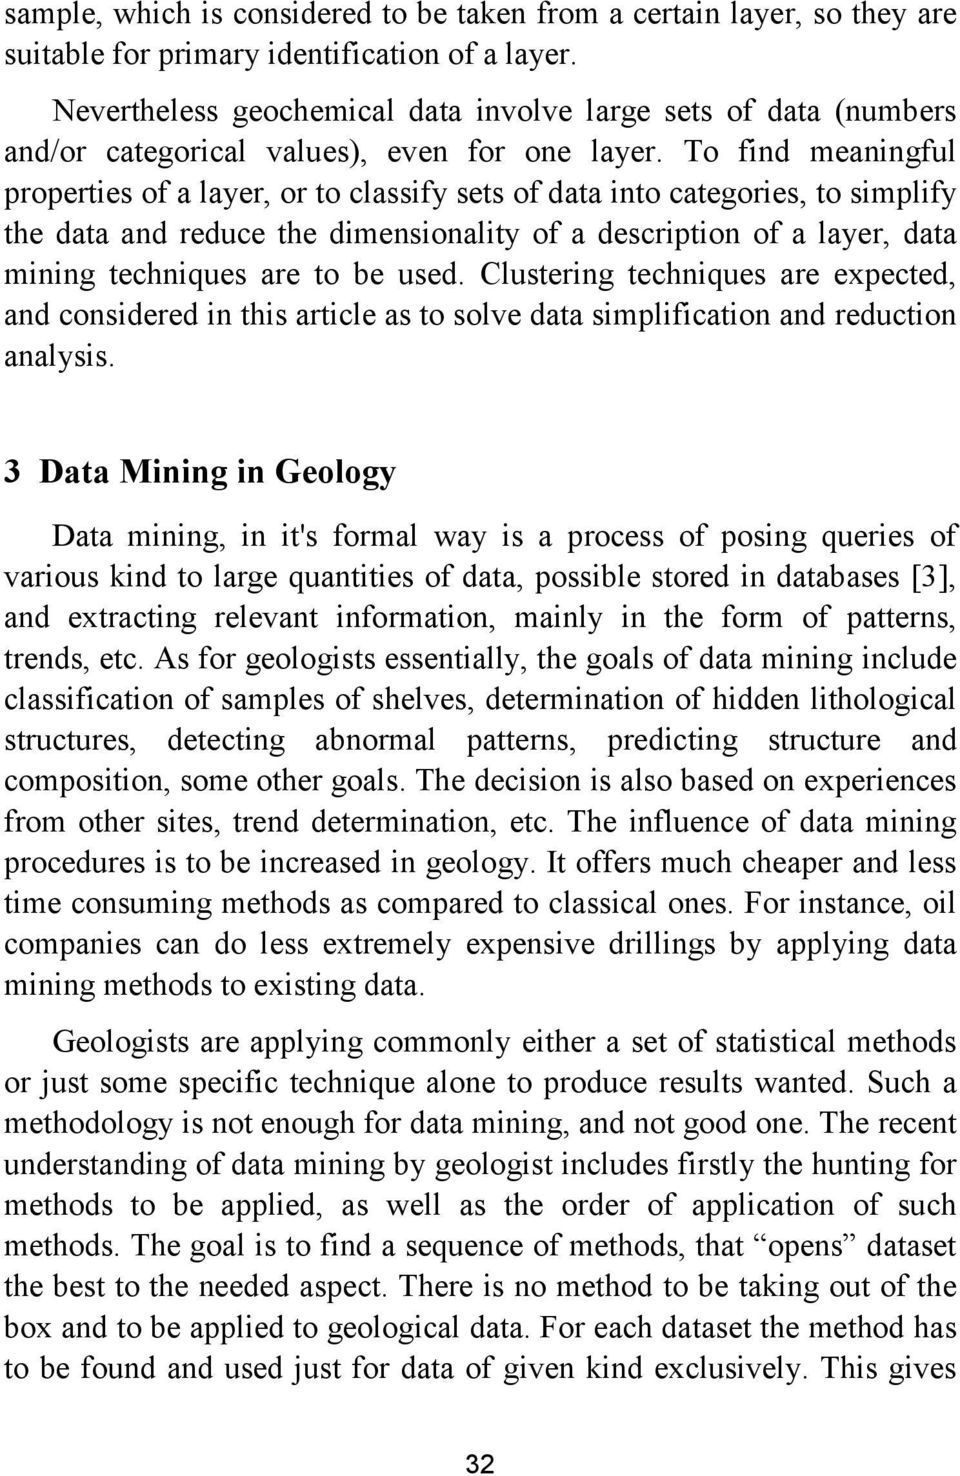 To find meaningful properties of a layer, or to classify sets of data into categories, to simplify the data and reduce the dimensionality of a description of a layer, data mining techniques are to be